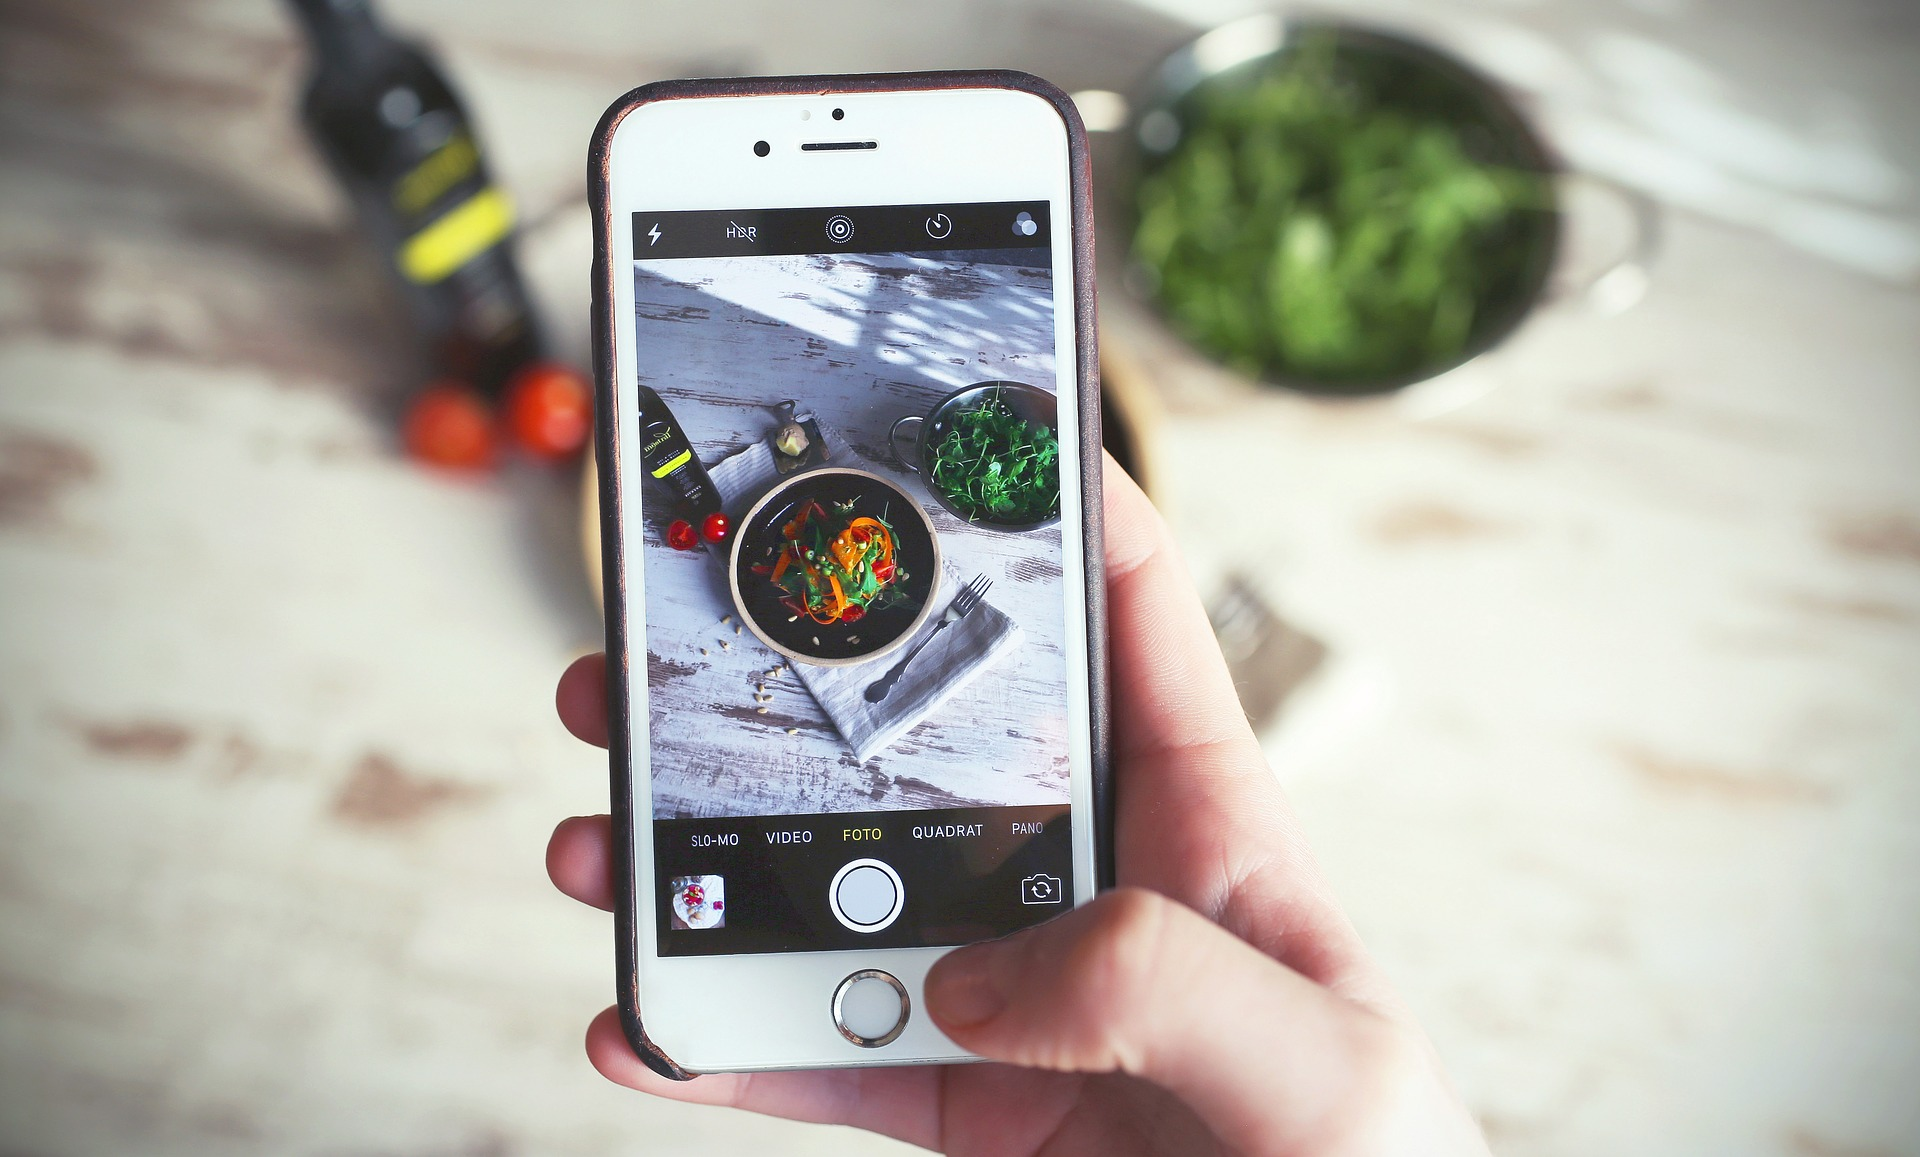 You will track your meals and blood glucose readings using MomBod's photo food log right from your smartphone. This will enable the dietitian to give you customized feedback and better help you reach your blood glucose goals. -